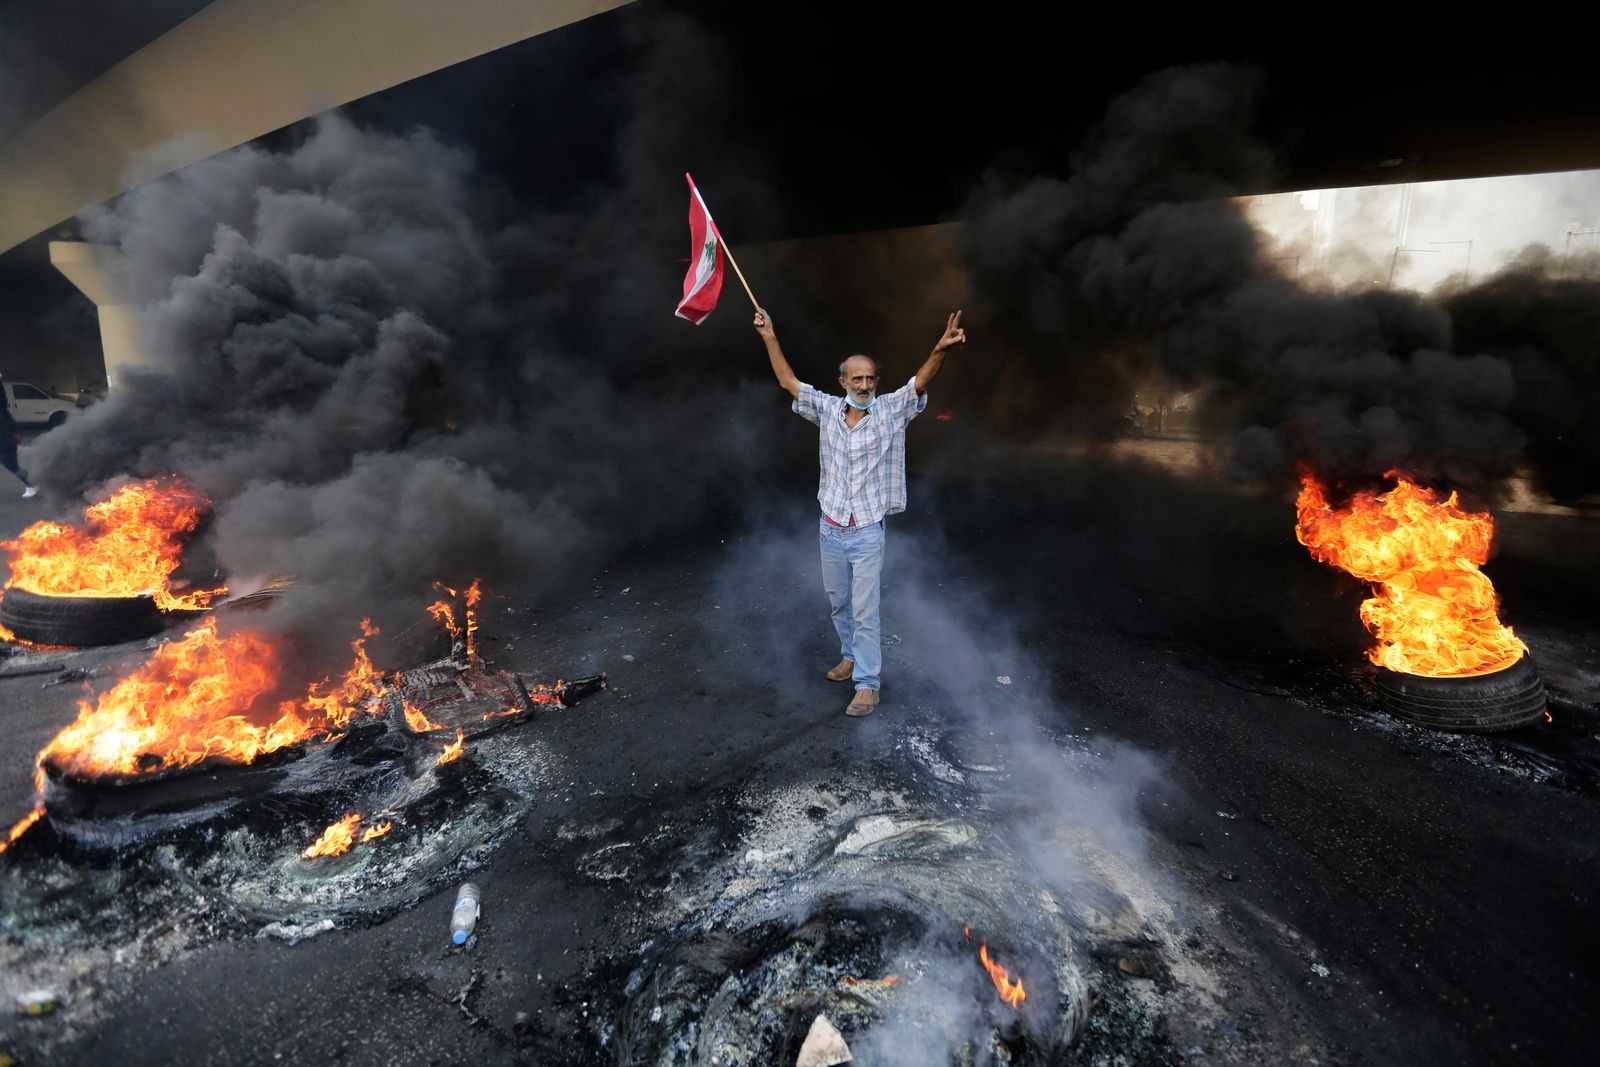 An anti-government protester makes victory sign, as he holds a Lebanese national flag and walks fire of tires that sits to block a road during a protest against government's plans to impose new taxes in Beirut, Lebanon, Friday, Oct. 18, 2019. (AP Photo/Hassan Ammar)